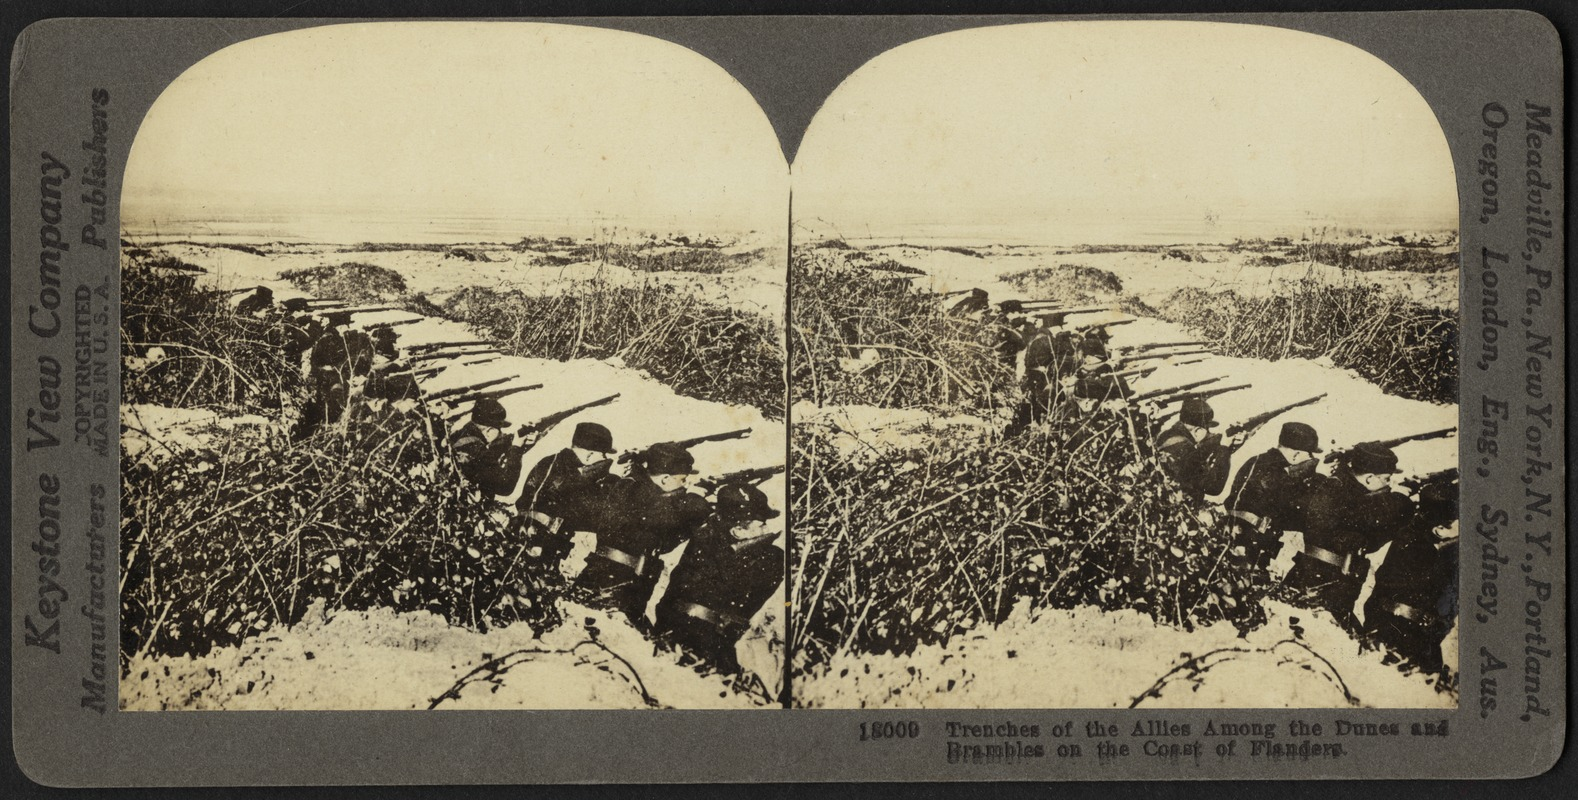 Trenches of the Allies on the coast of Flanders